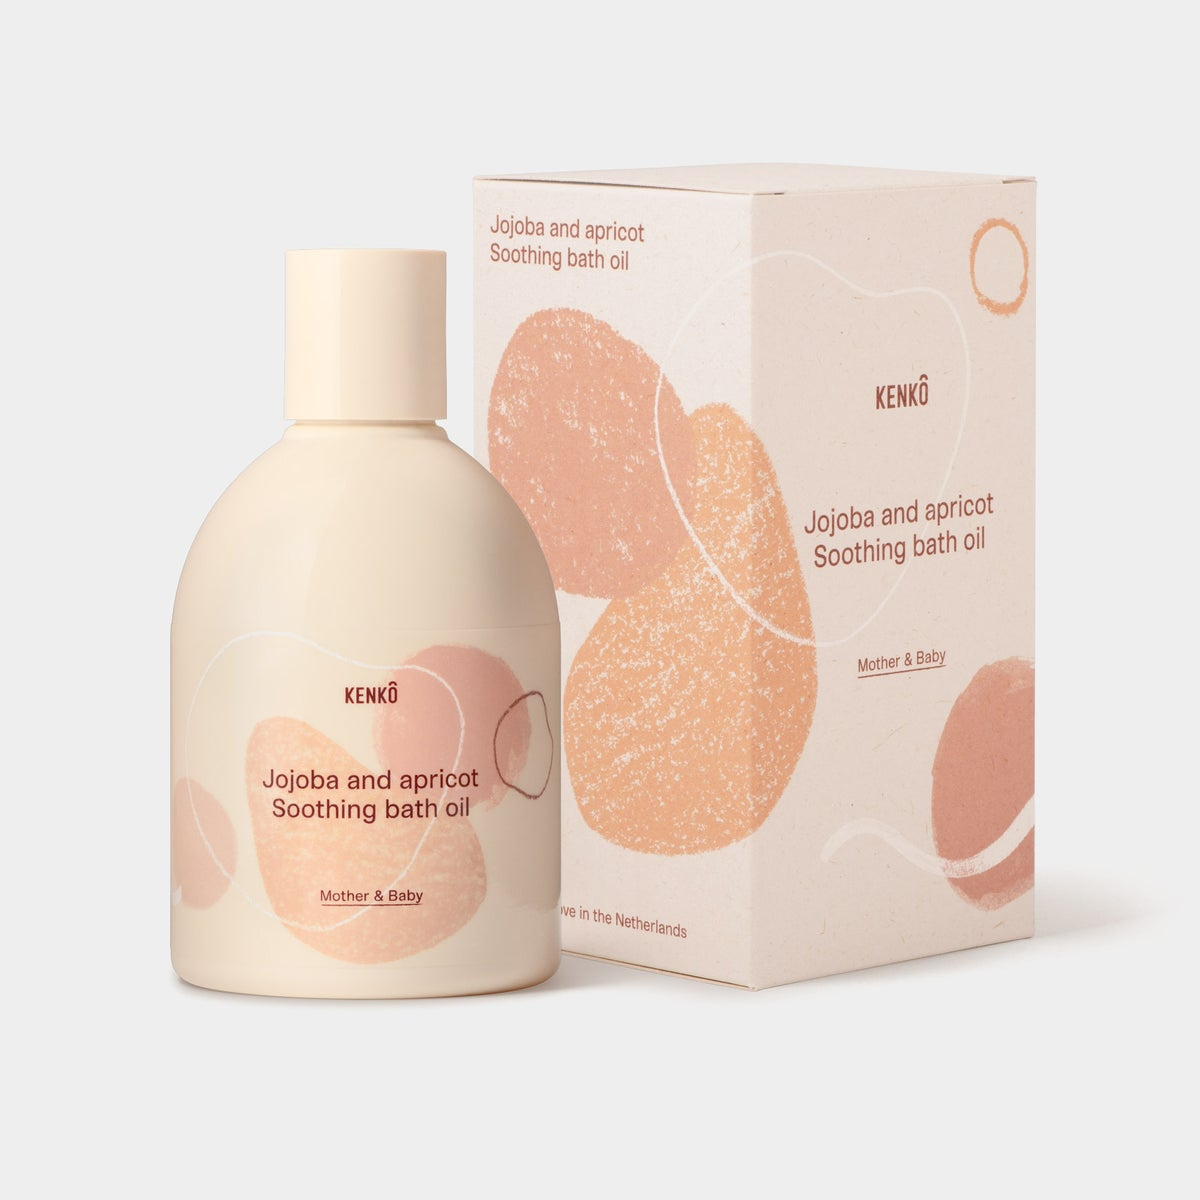 Image of Kenkô Jojoba & Apricot Soothing Bath Oil Mother & Baby